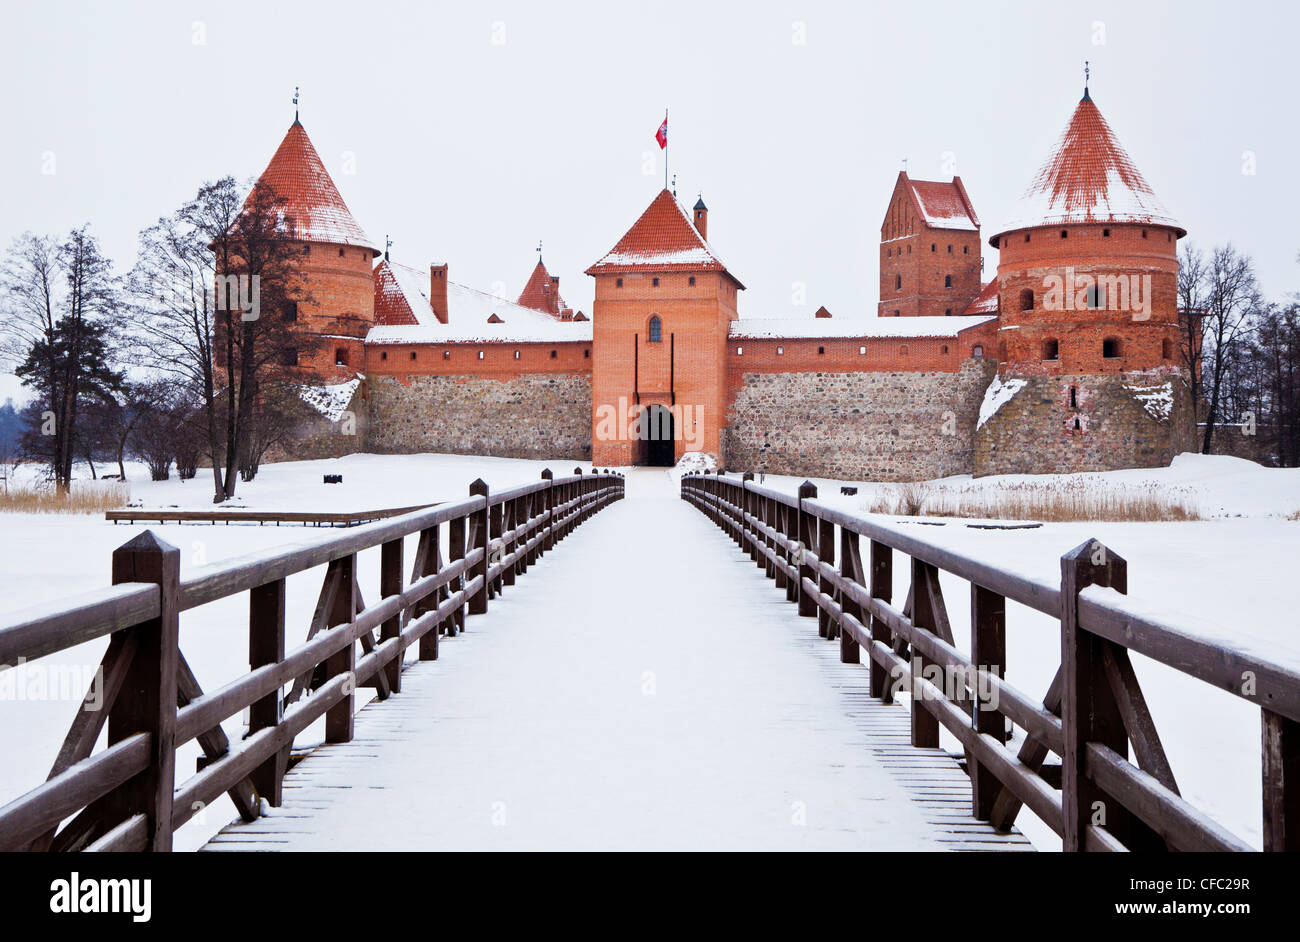 Trakai Castle viewed from the bridge near Vilnius, Lithuania Stock Photo